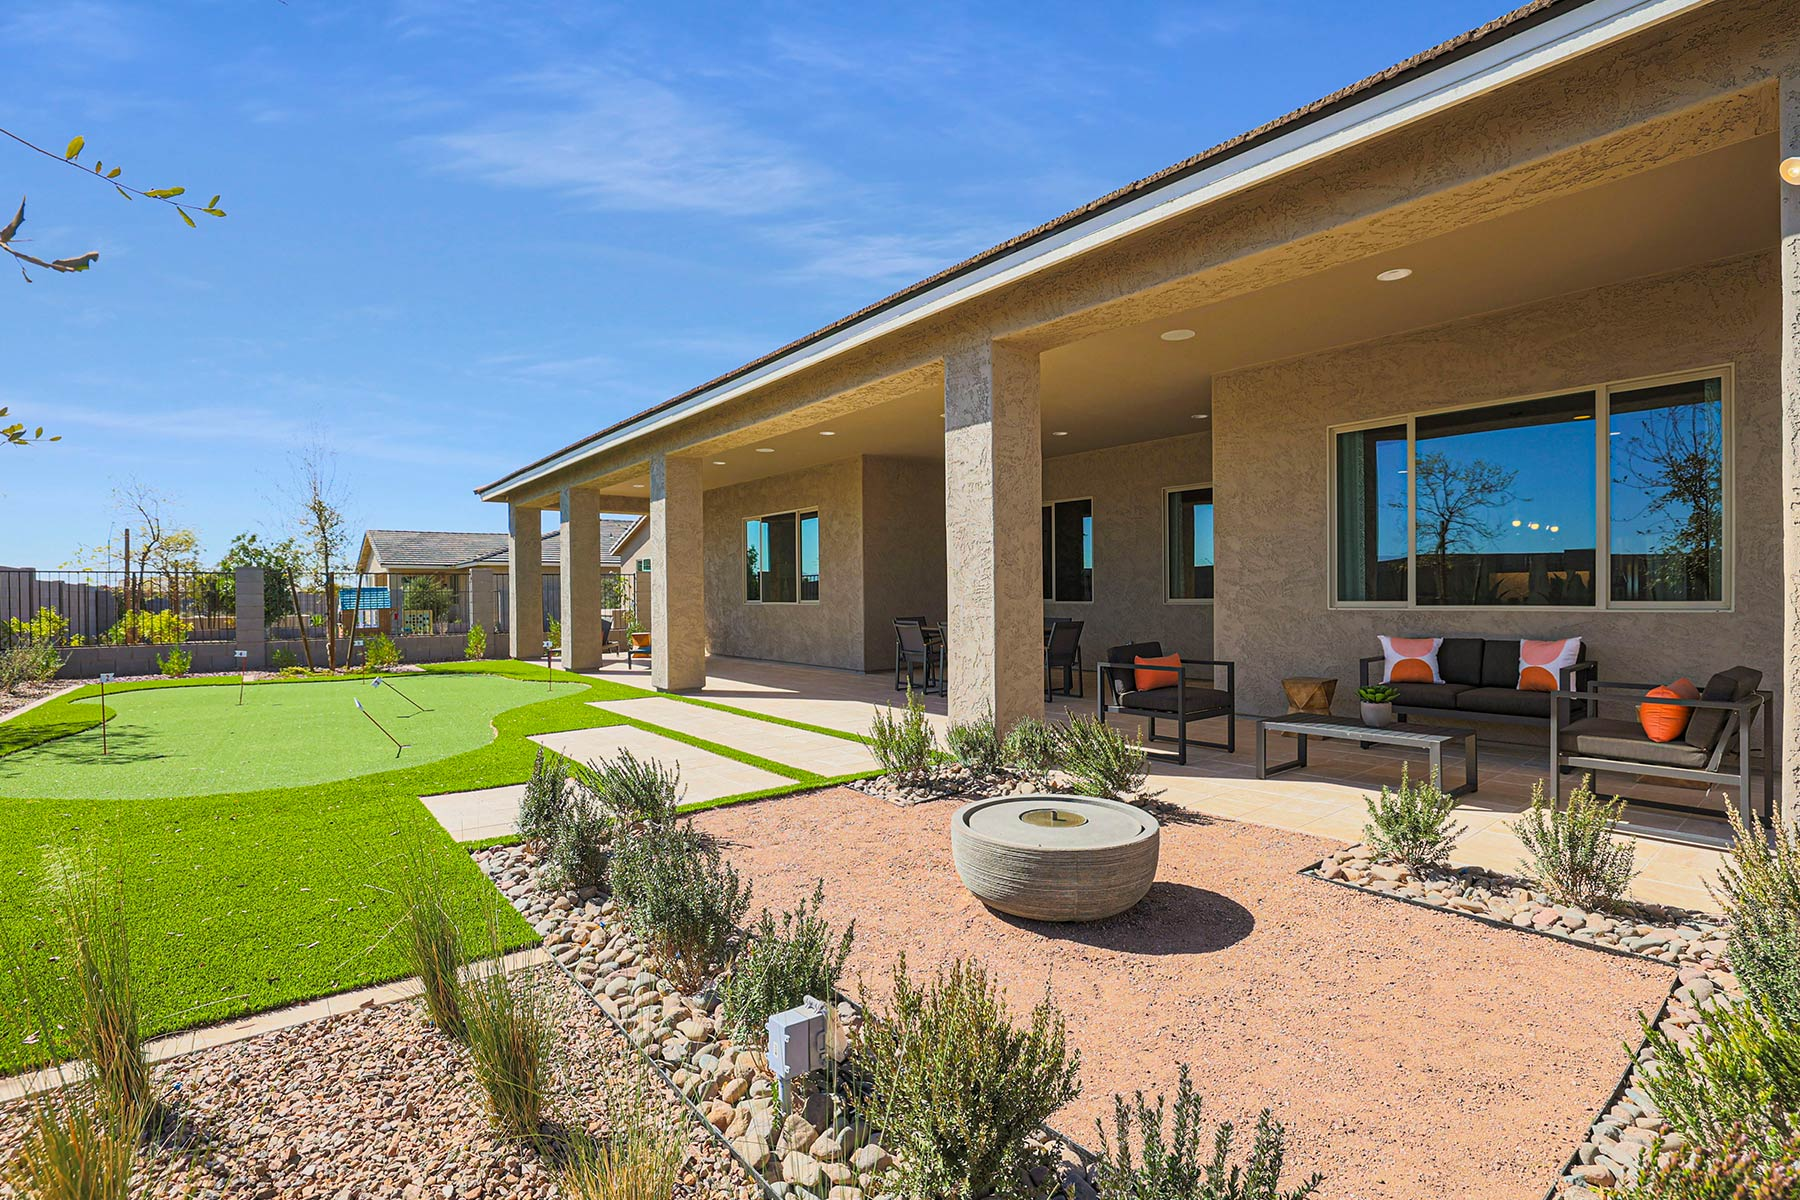 Castleton Plan MATPHX_AZC_Castleton_BY_1800x1200 at Azure Canyon in Litchfield Park Arizona by Mattamy Homes